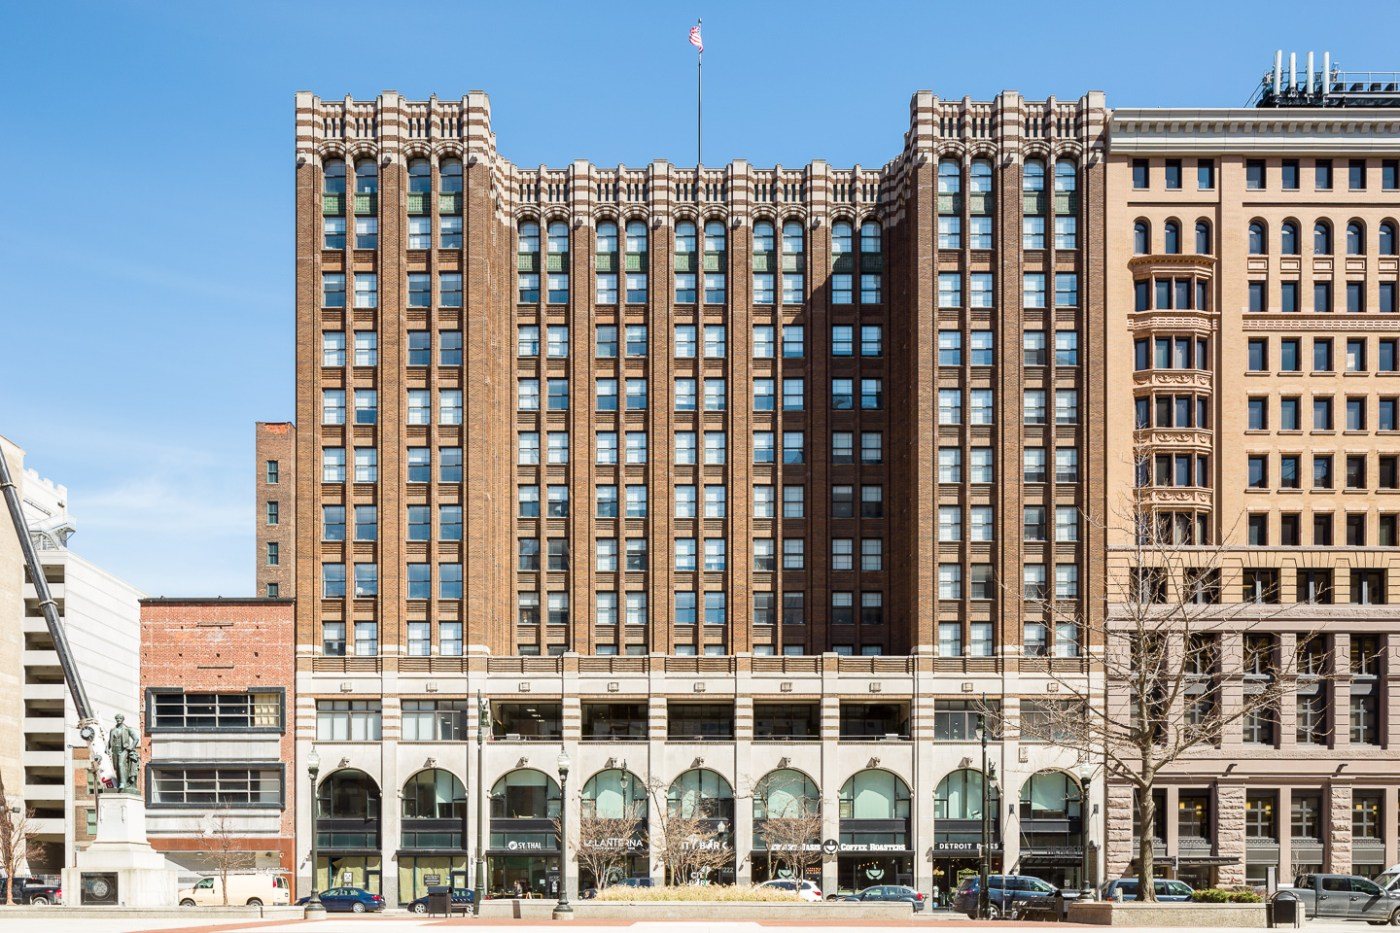 Exterior photograph of Griswold Building in Detroit, Michigan by architect Albert Kahn.